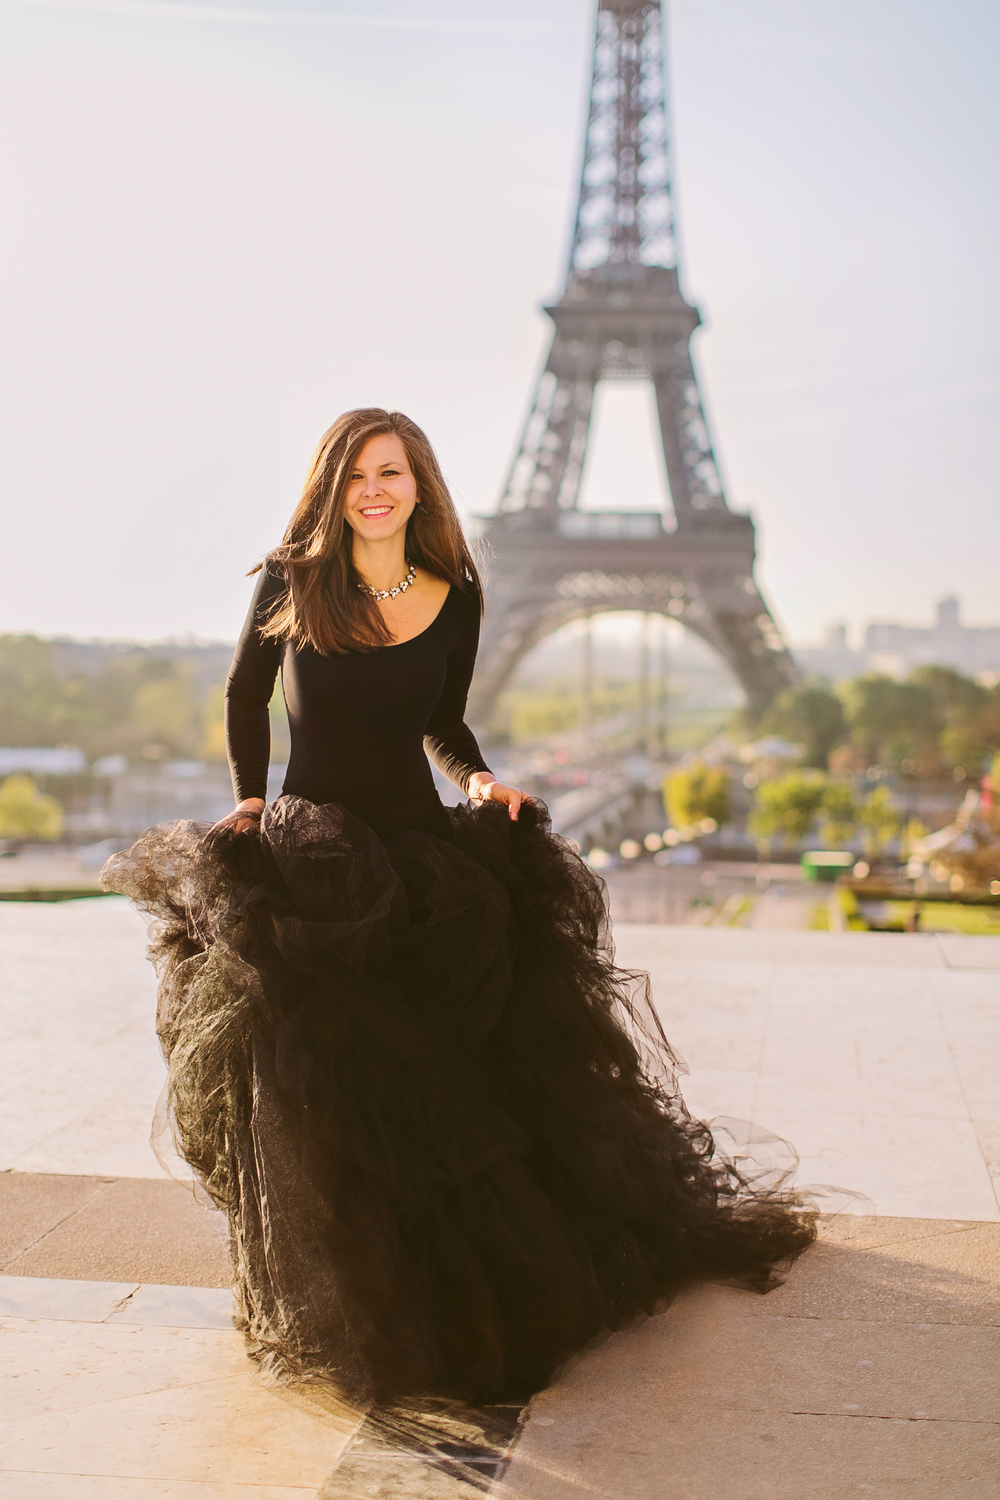 lauren_knight_eiffel_tower_aspiring_kennedy_paris_photoshoot_lamour_de_paris